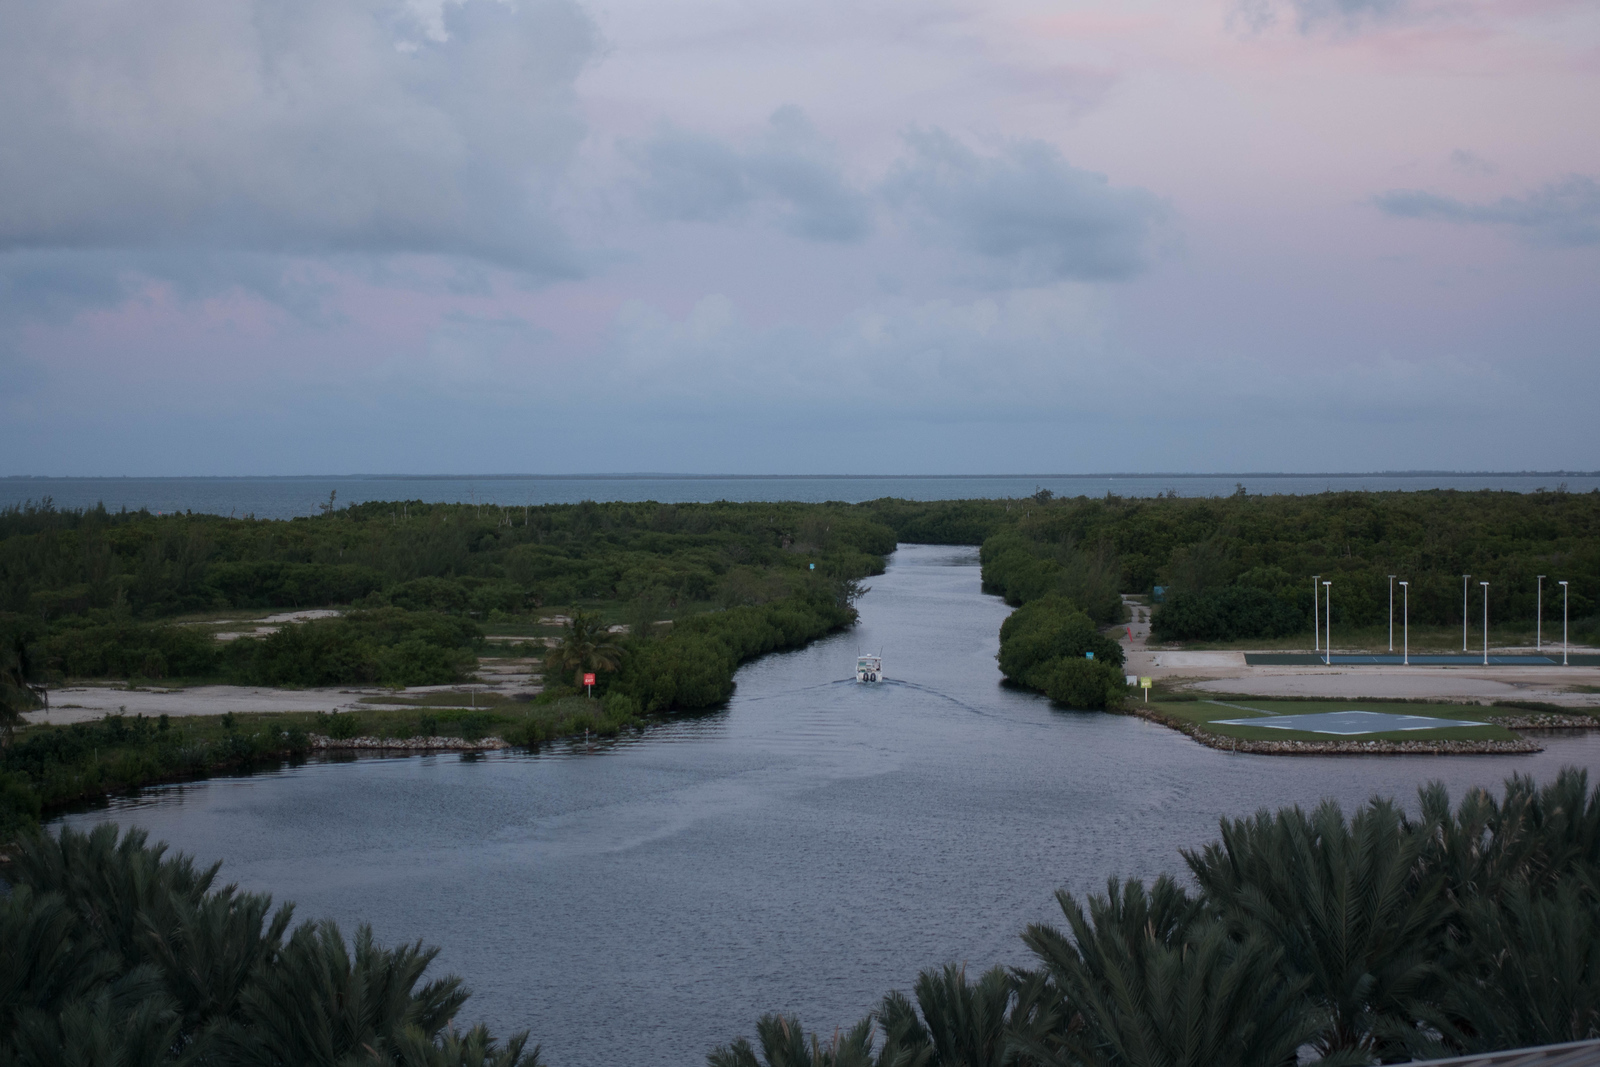 What to do in Cayman Islands: Take in the views from the Lookout Tower in Camana Bay